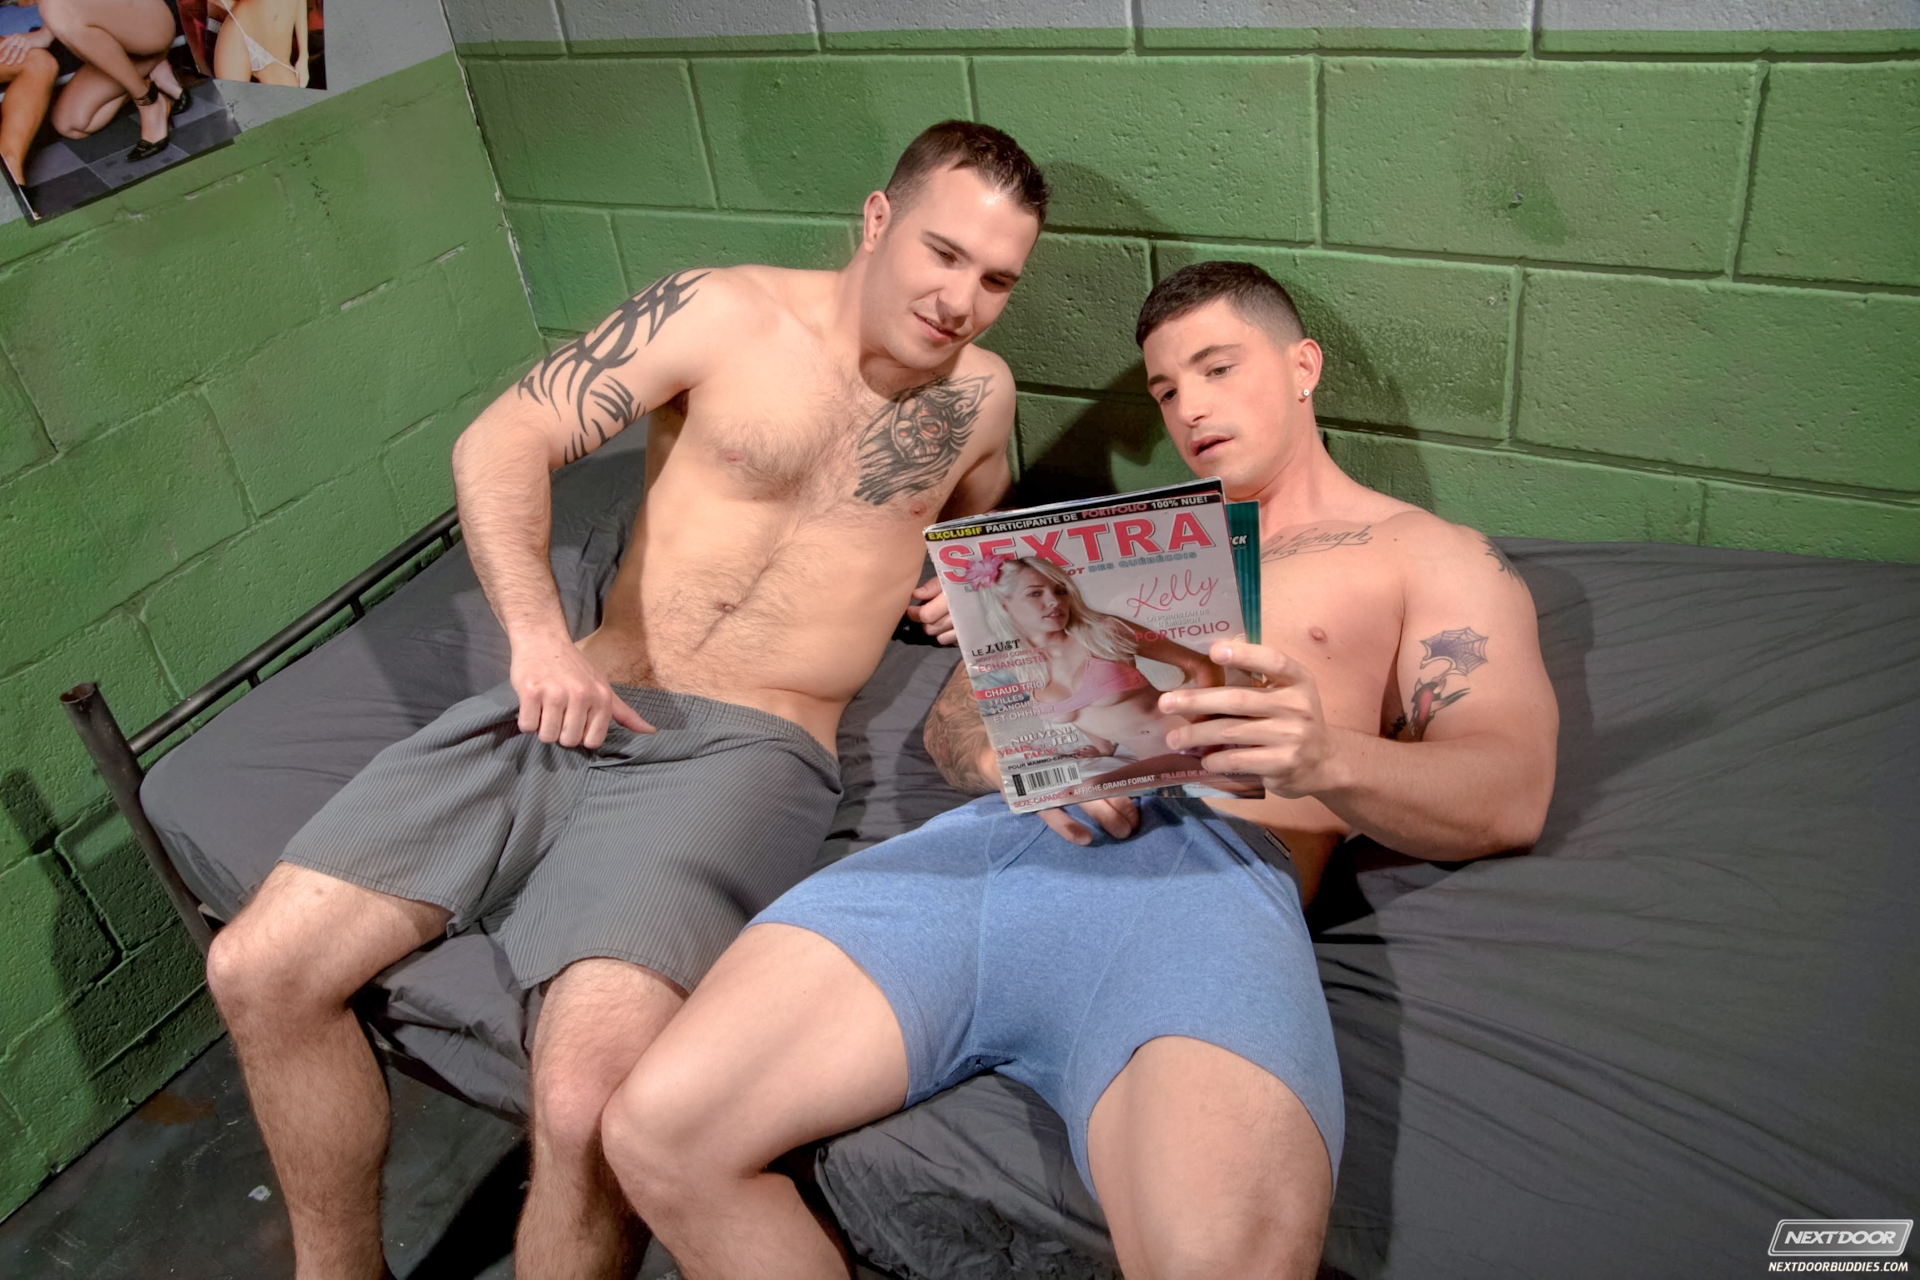 Straight guys jerking each other gay that039s 3